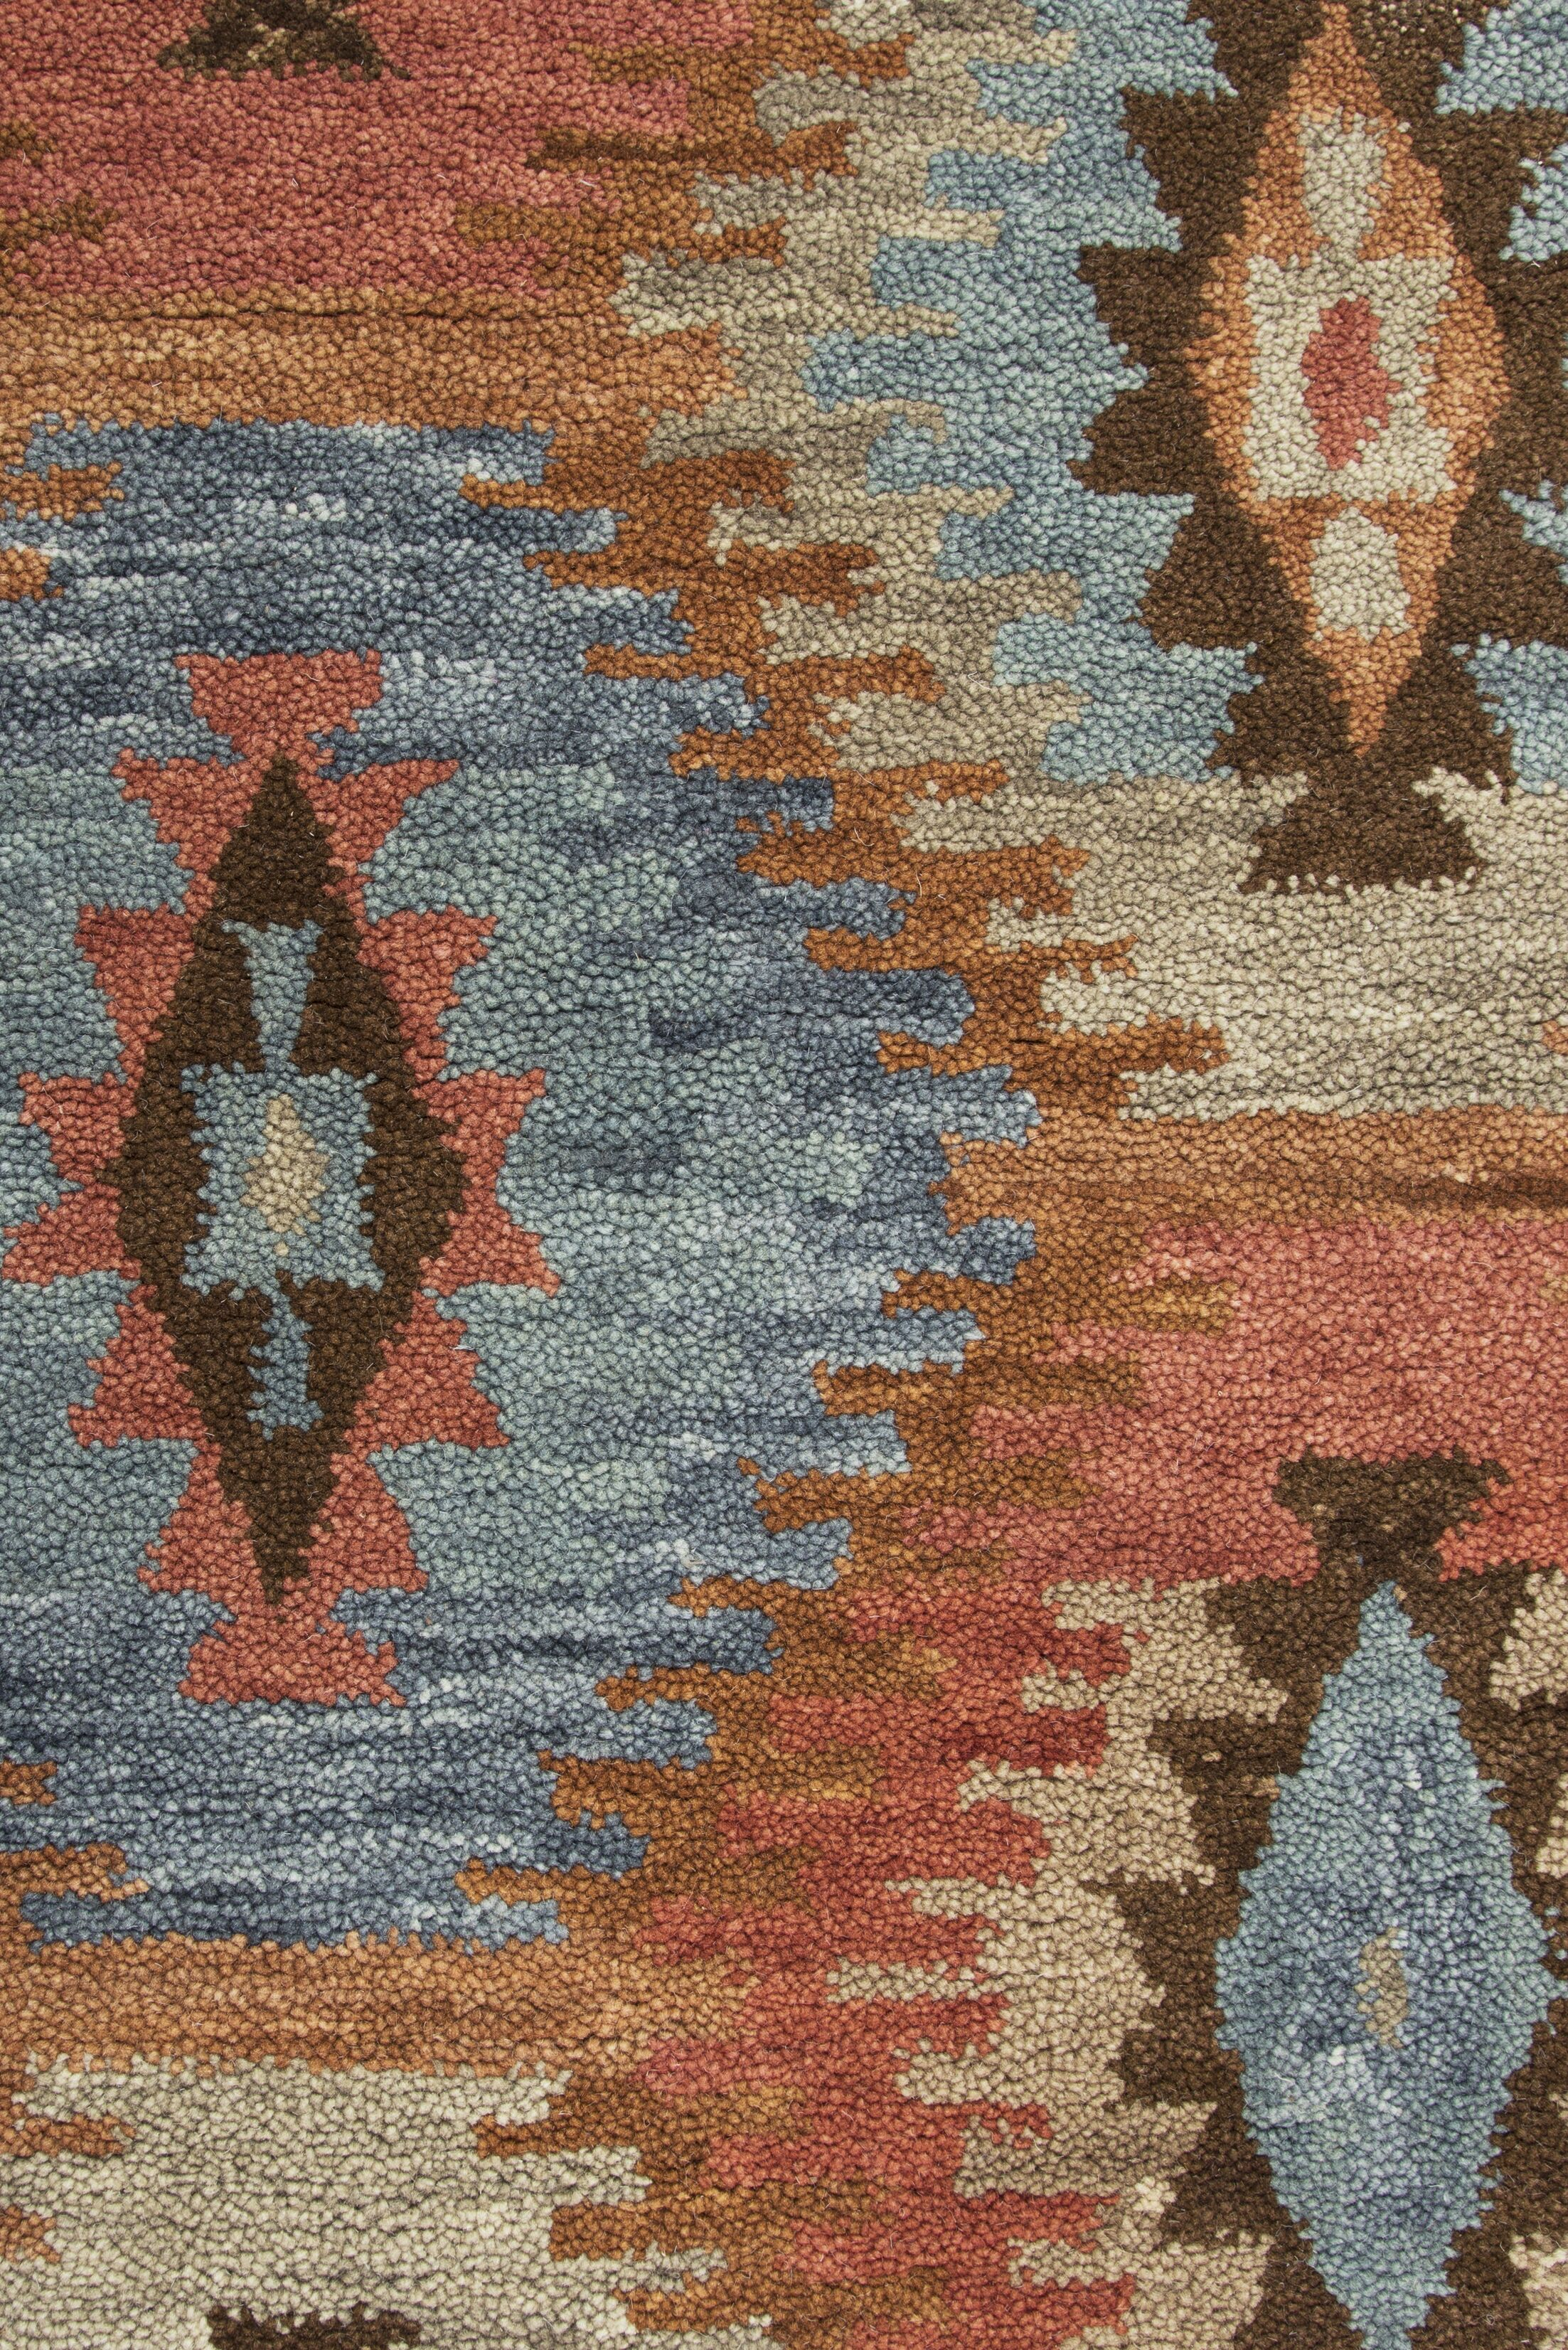 Harrison Hand-Tufted Paprica Area Rug Size: Runner 2'6